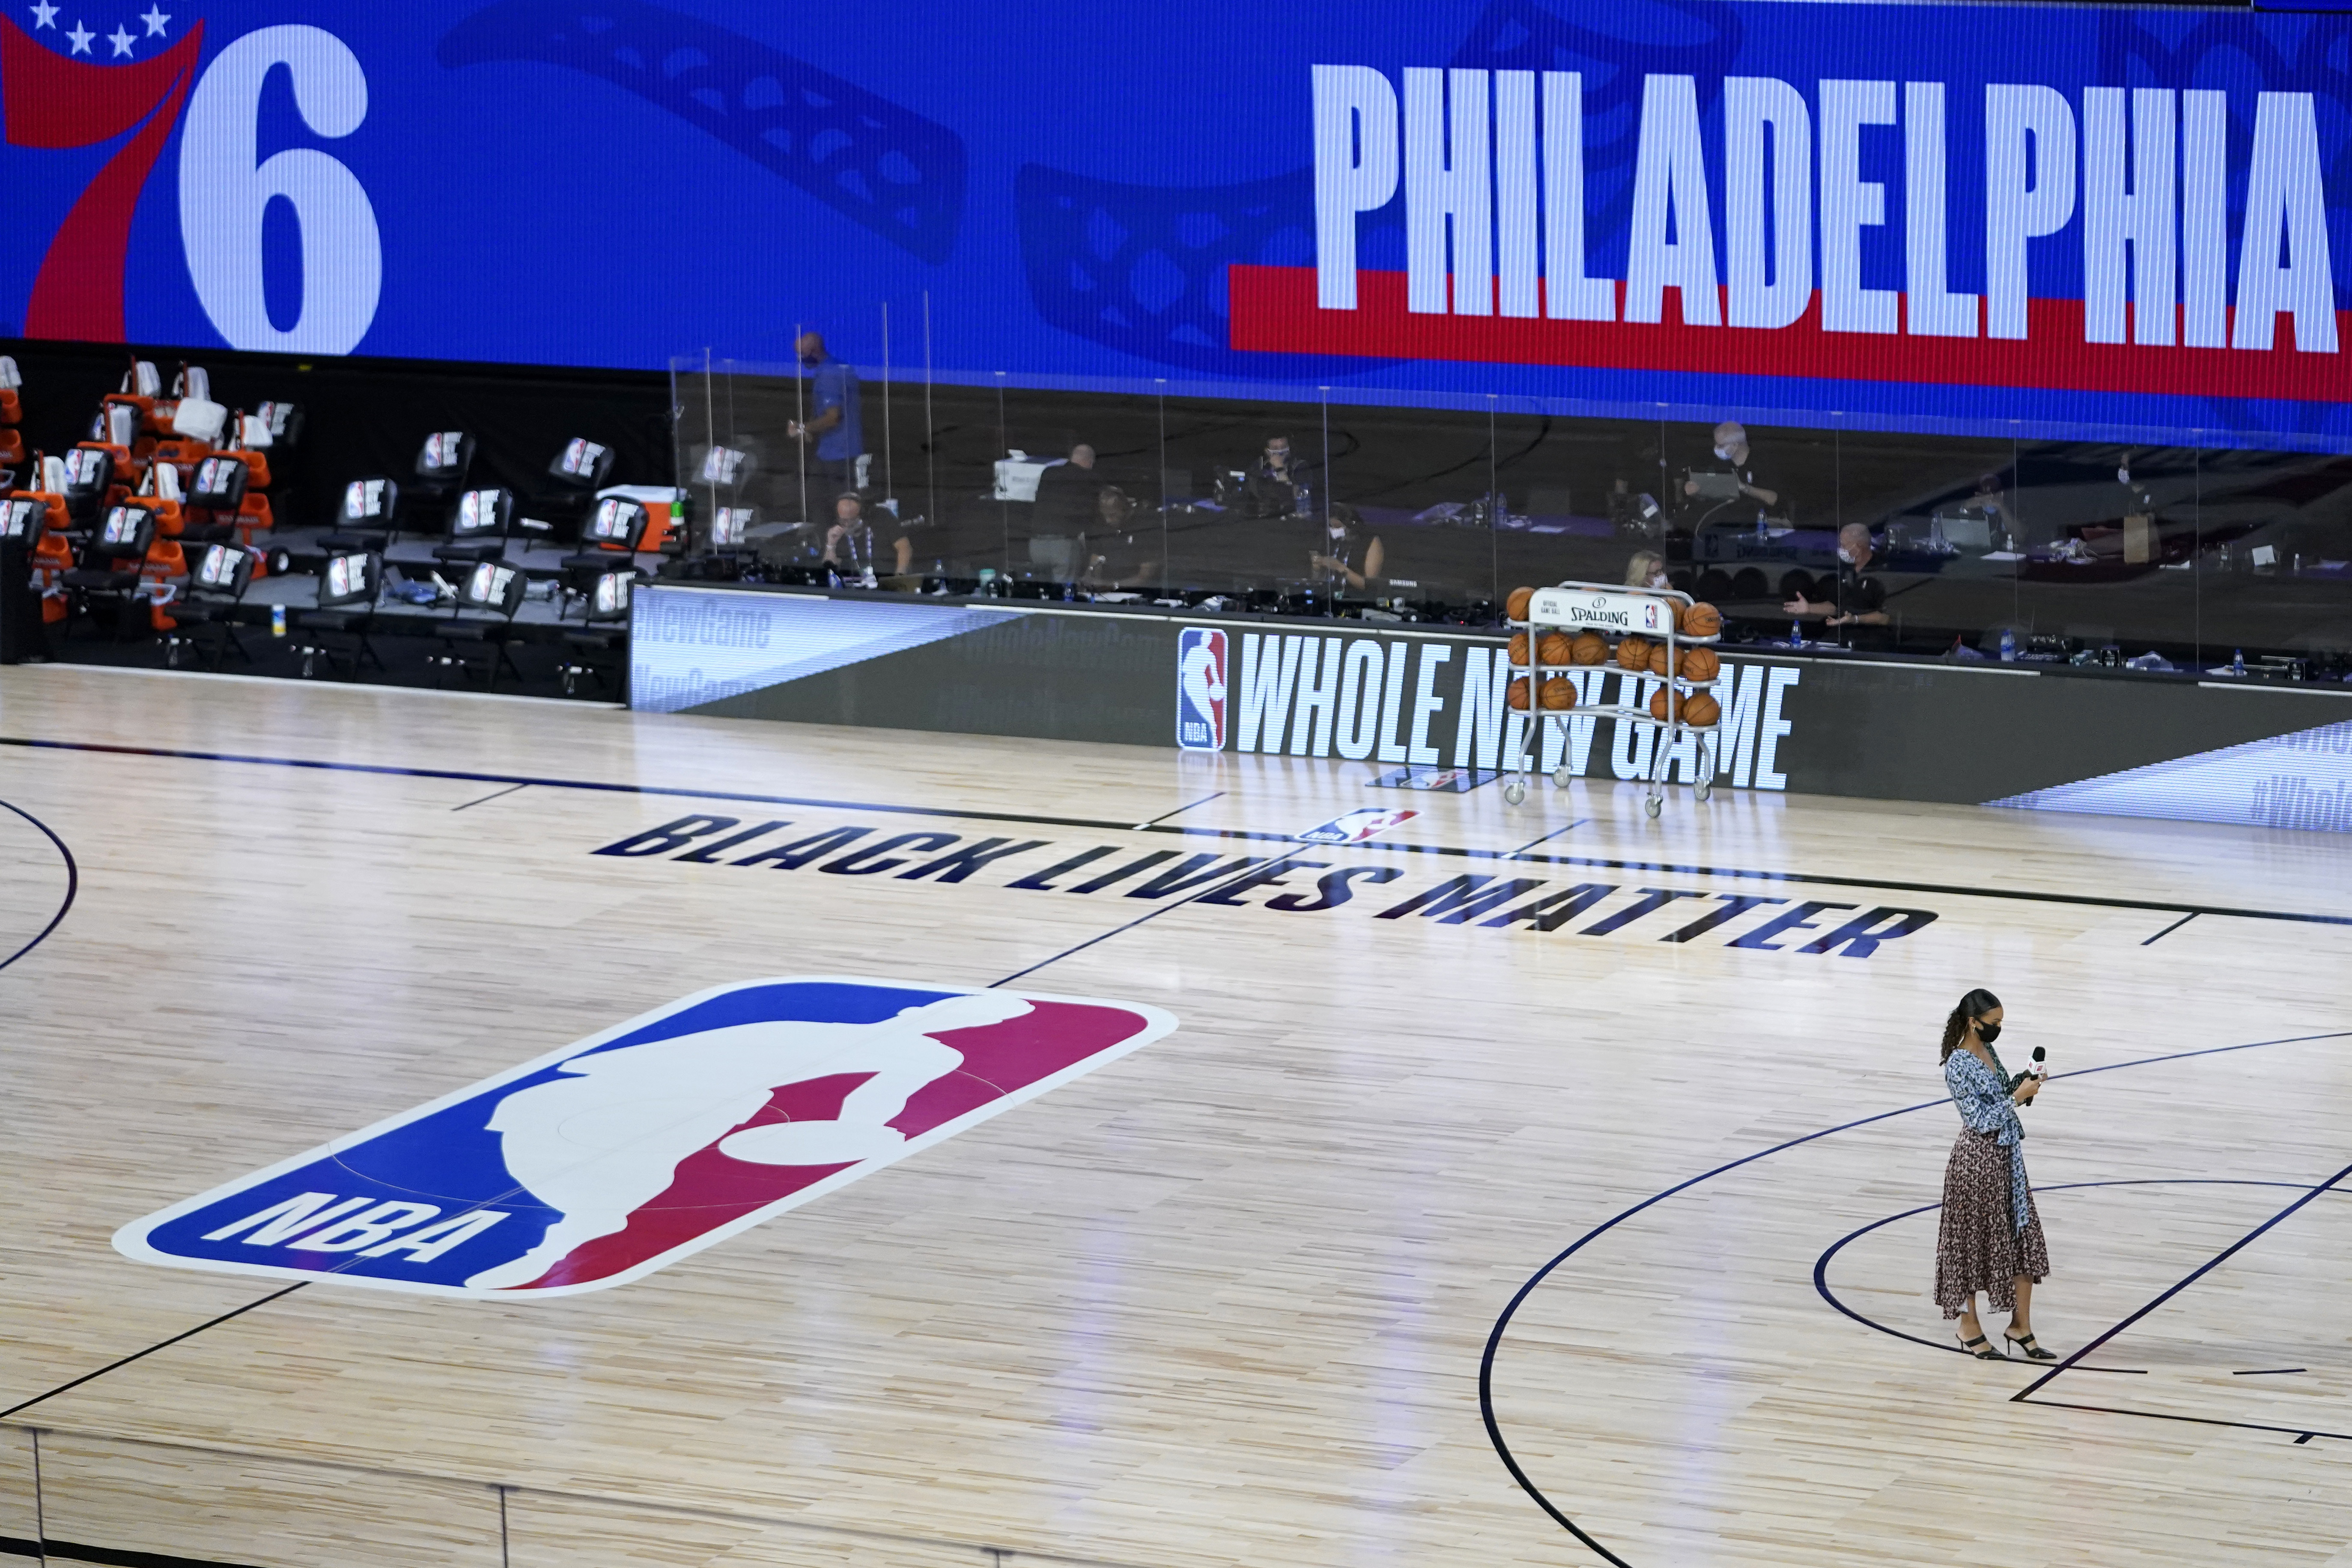 """Malika Andrews in the bottom right corner on the NBA court that says """"Black Lives Matter."""""""